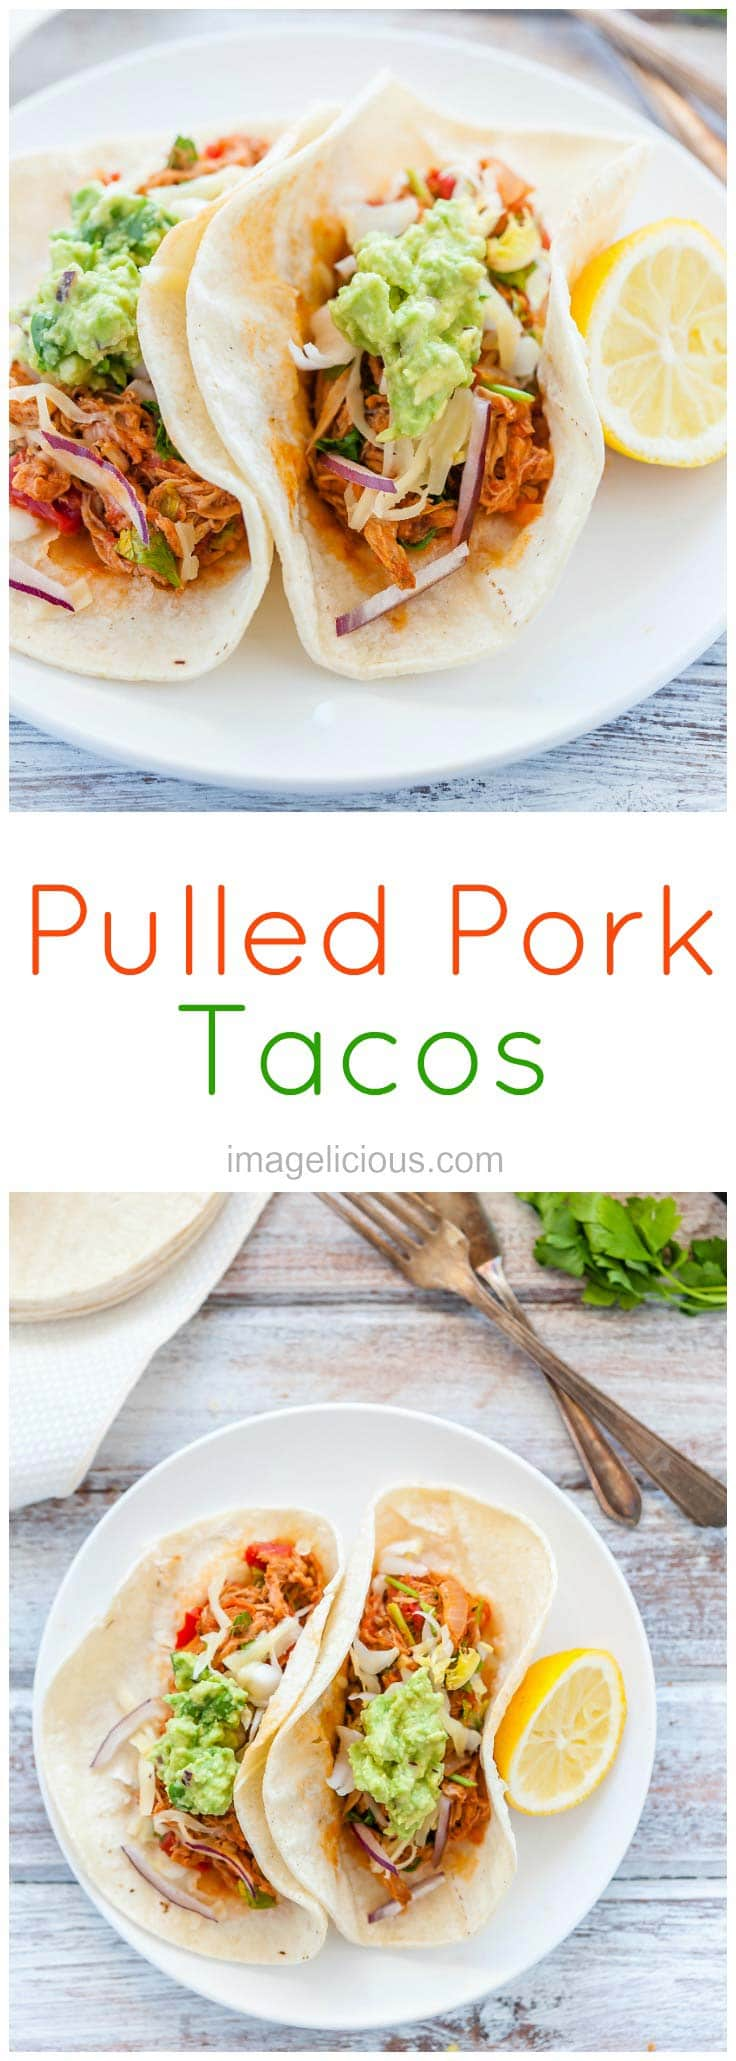 Pulled Pork   Tacos   Dinner   Lunch   Easy Meal   Quick Dinner   Summer   Father's Day   Imagelicious